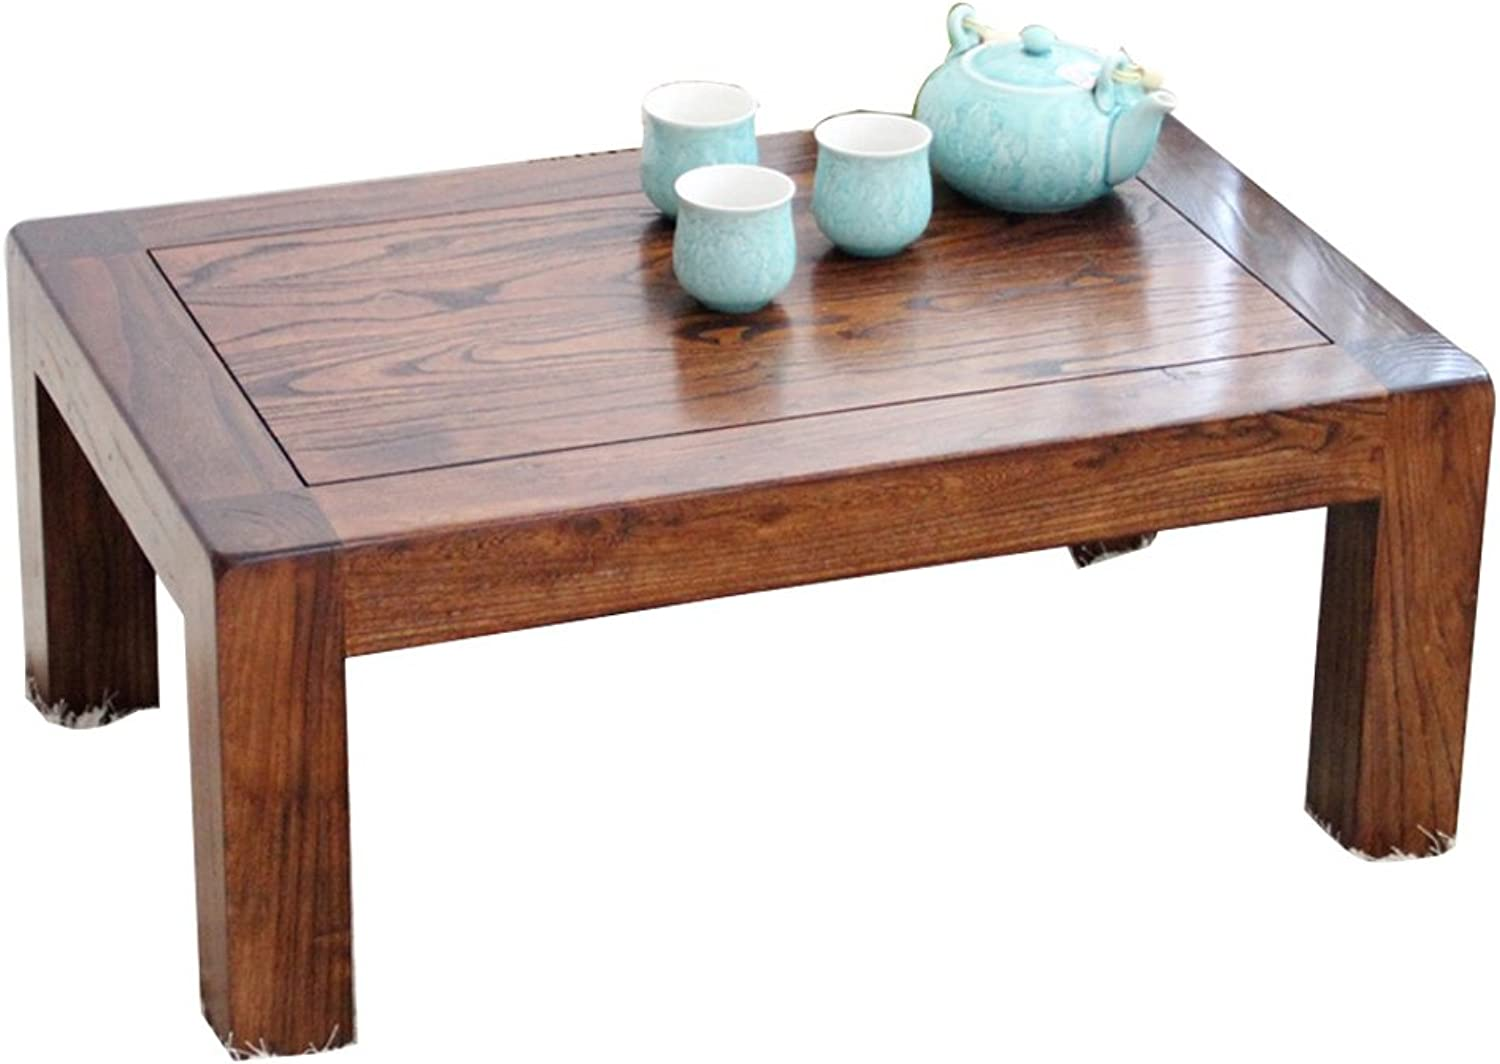 Coffee Table Simple Floating Window Table Japanese Style Low Table Antique Platform Old elm Wood Tatami Tables (color   Brown, Size   60  40  25cm)